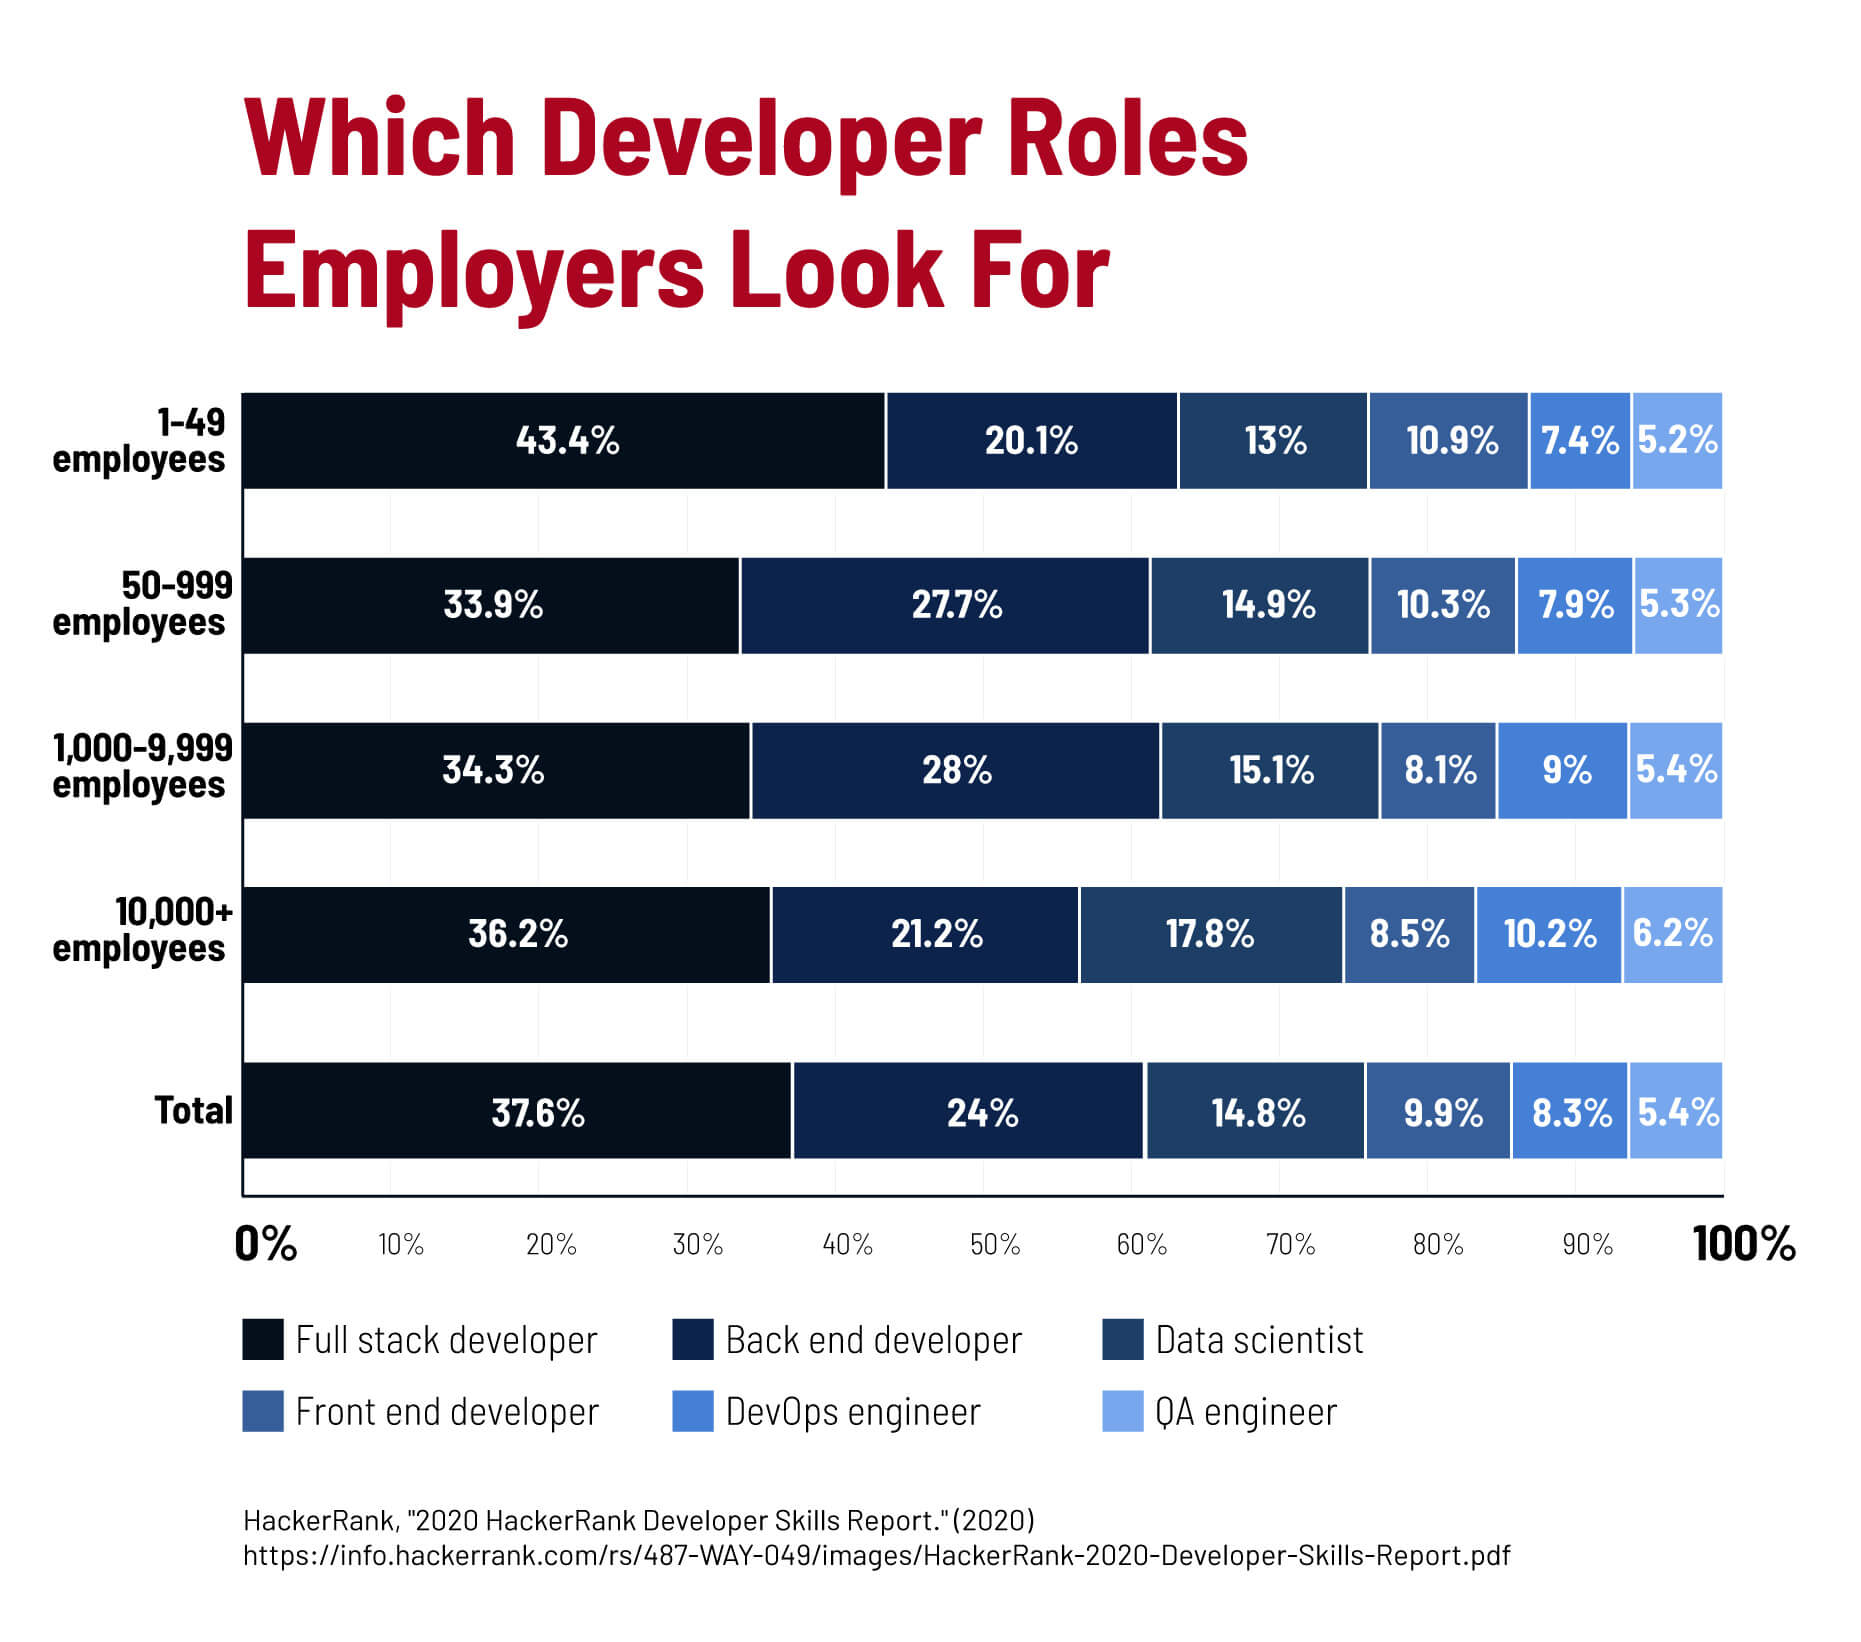 A chart showing which developer roles employers look for